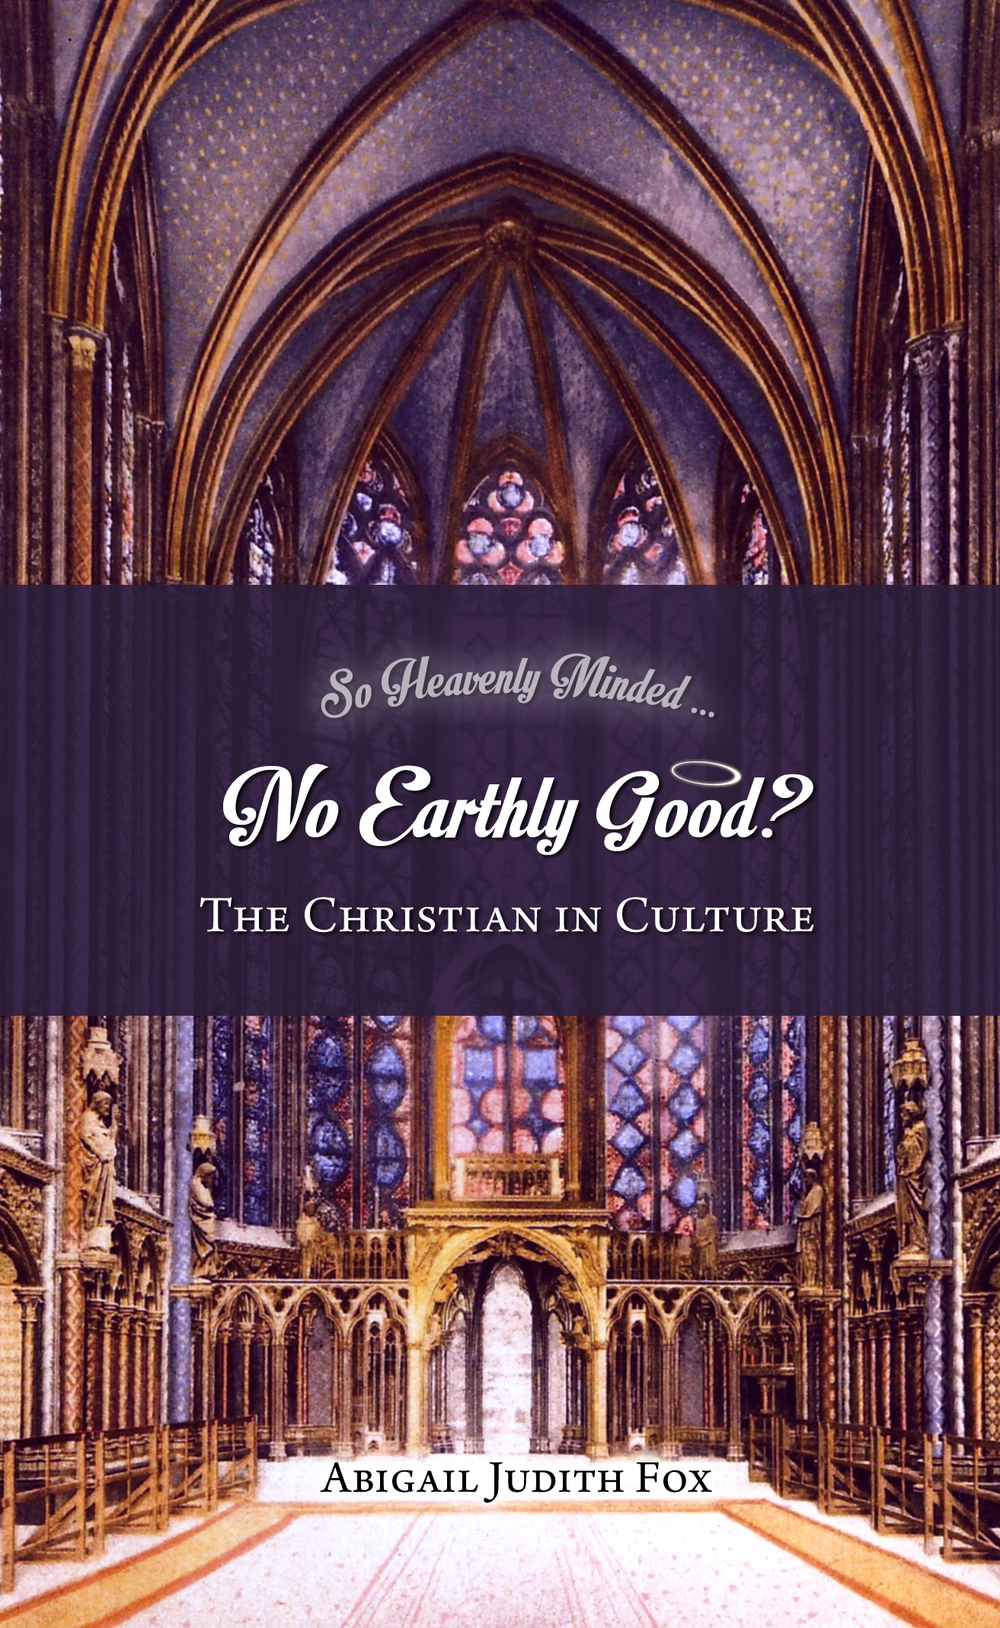 No Earthly Good? The Christian in Culture